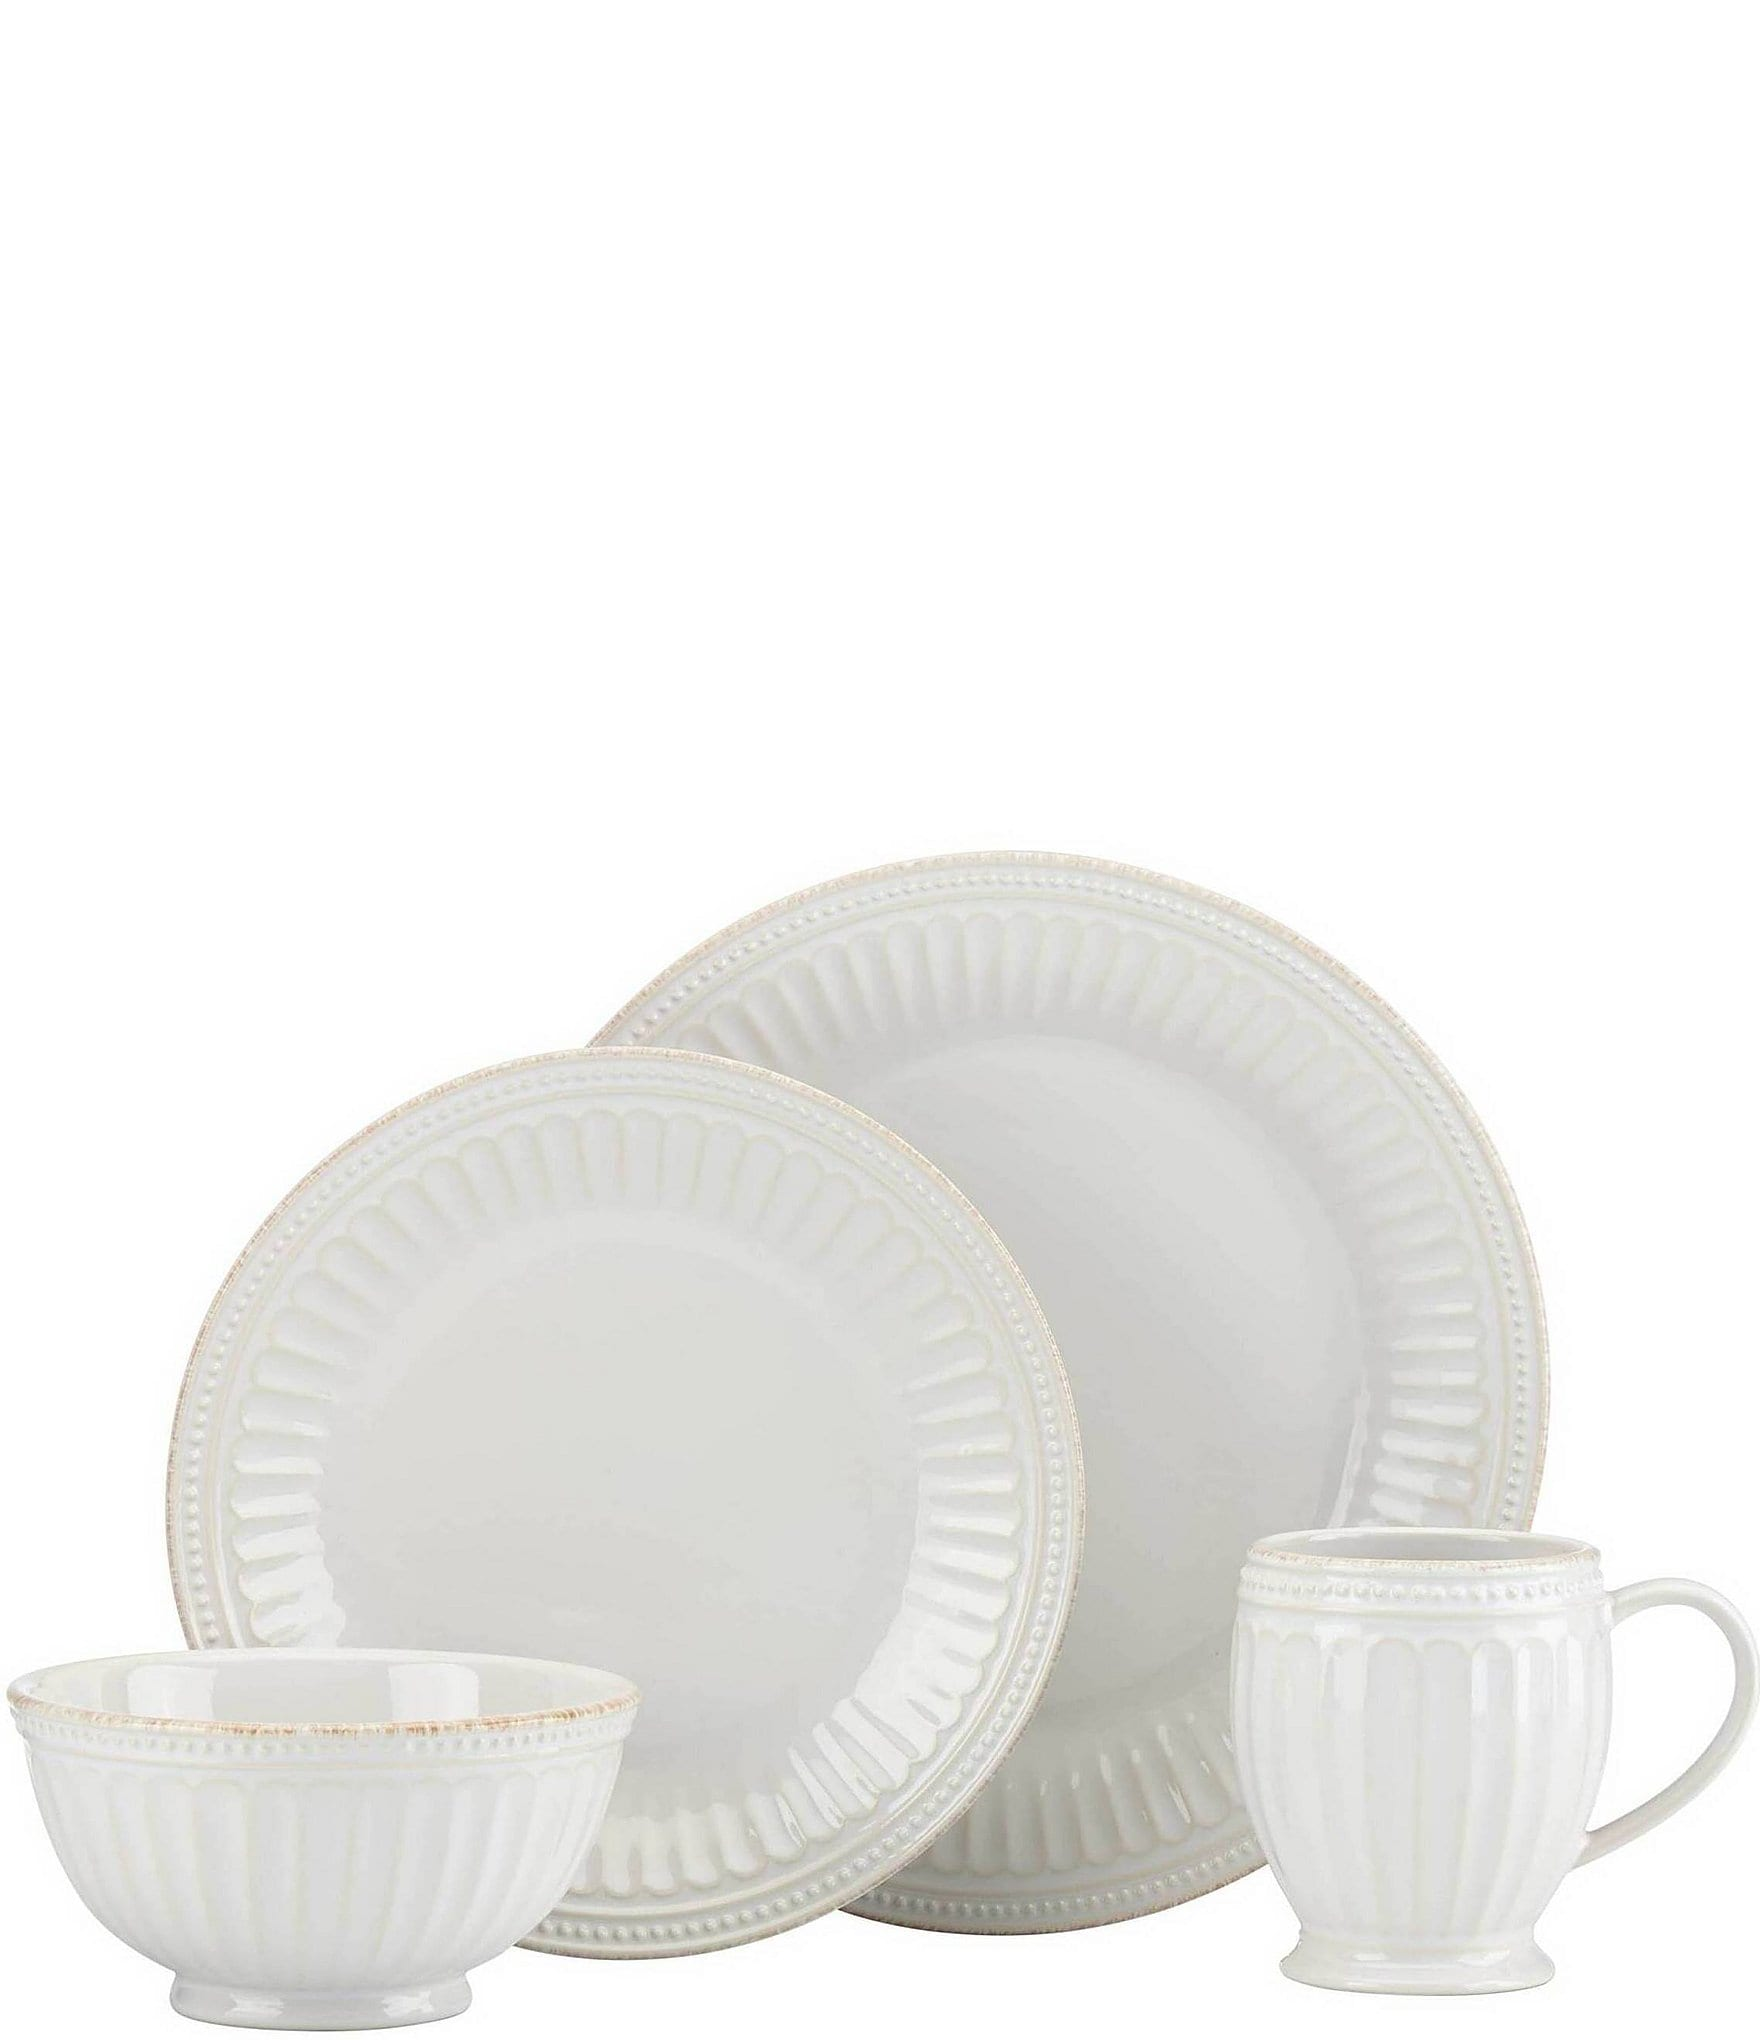 sc 1 st  Dillardu0027s & Casual Everyday Dinnerware: Plates  Dishes u0026 Sets | Dillards